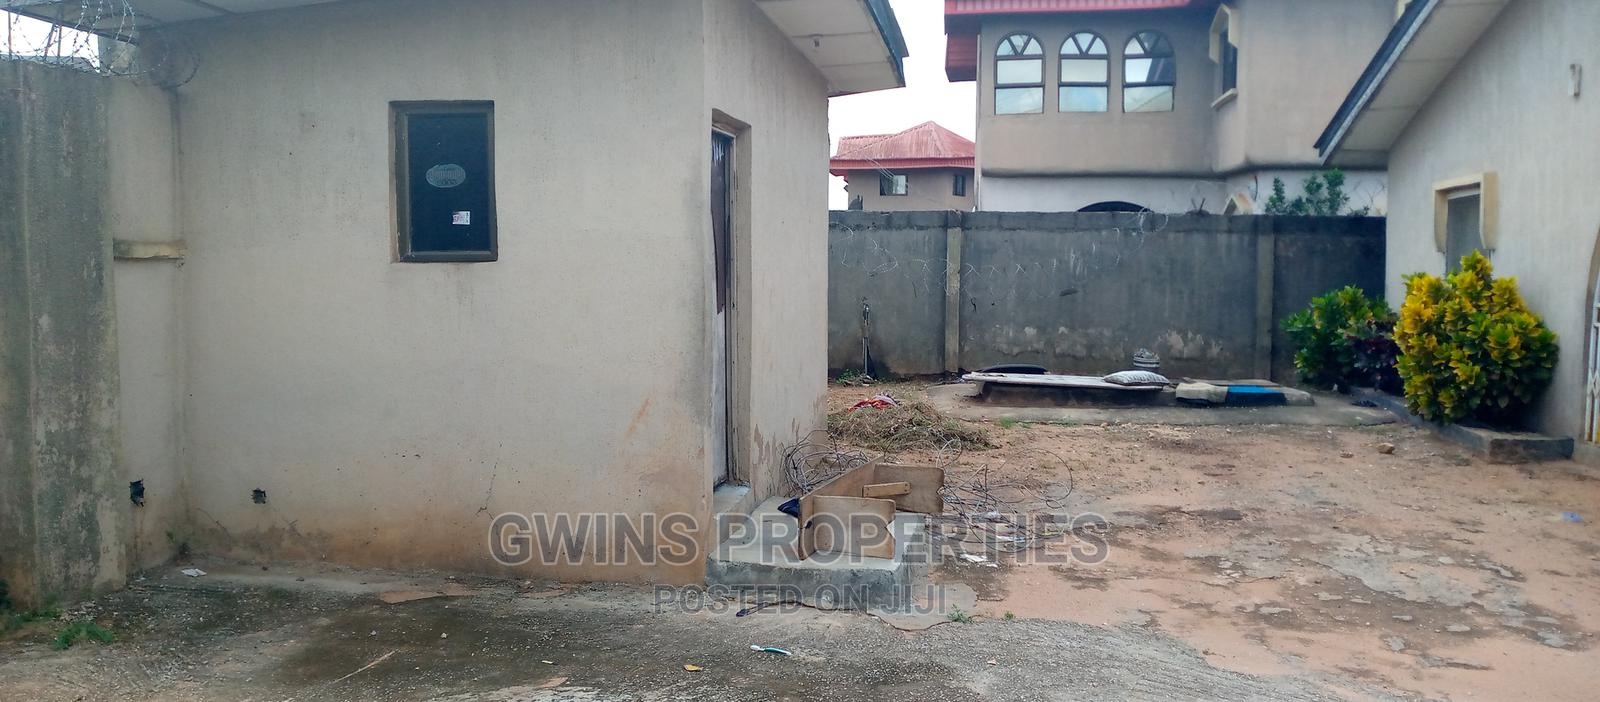 Furnished 3bdrm Block of Flats in G-Wins Properties, Benin City   Houses & Apartments For Sale for sale in Benin City, Edo State, Nigeria